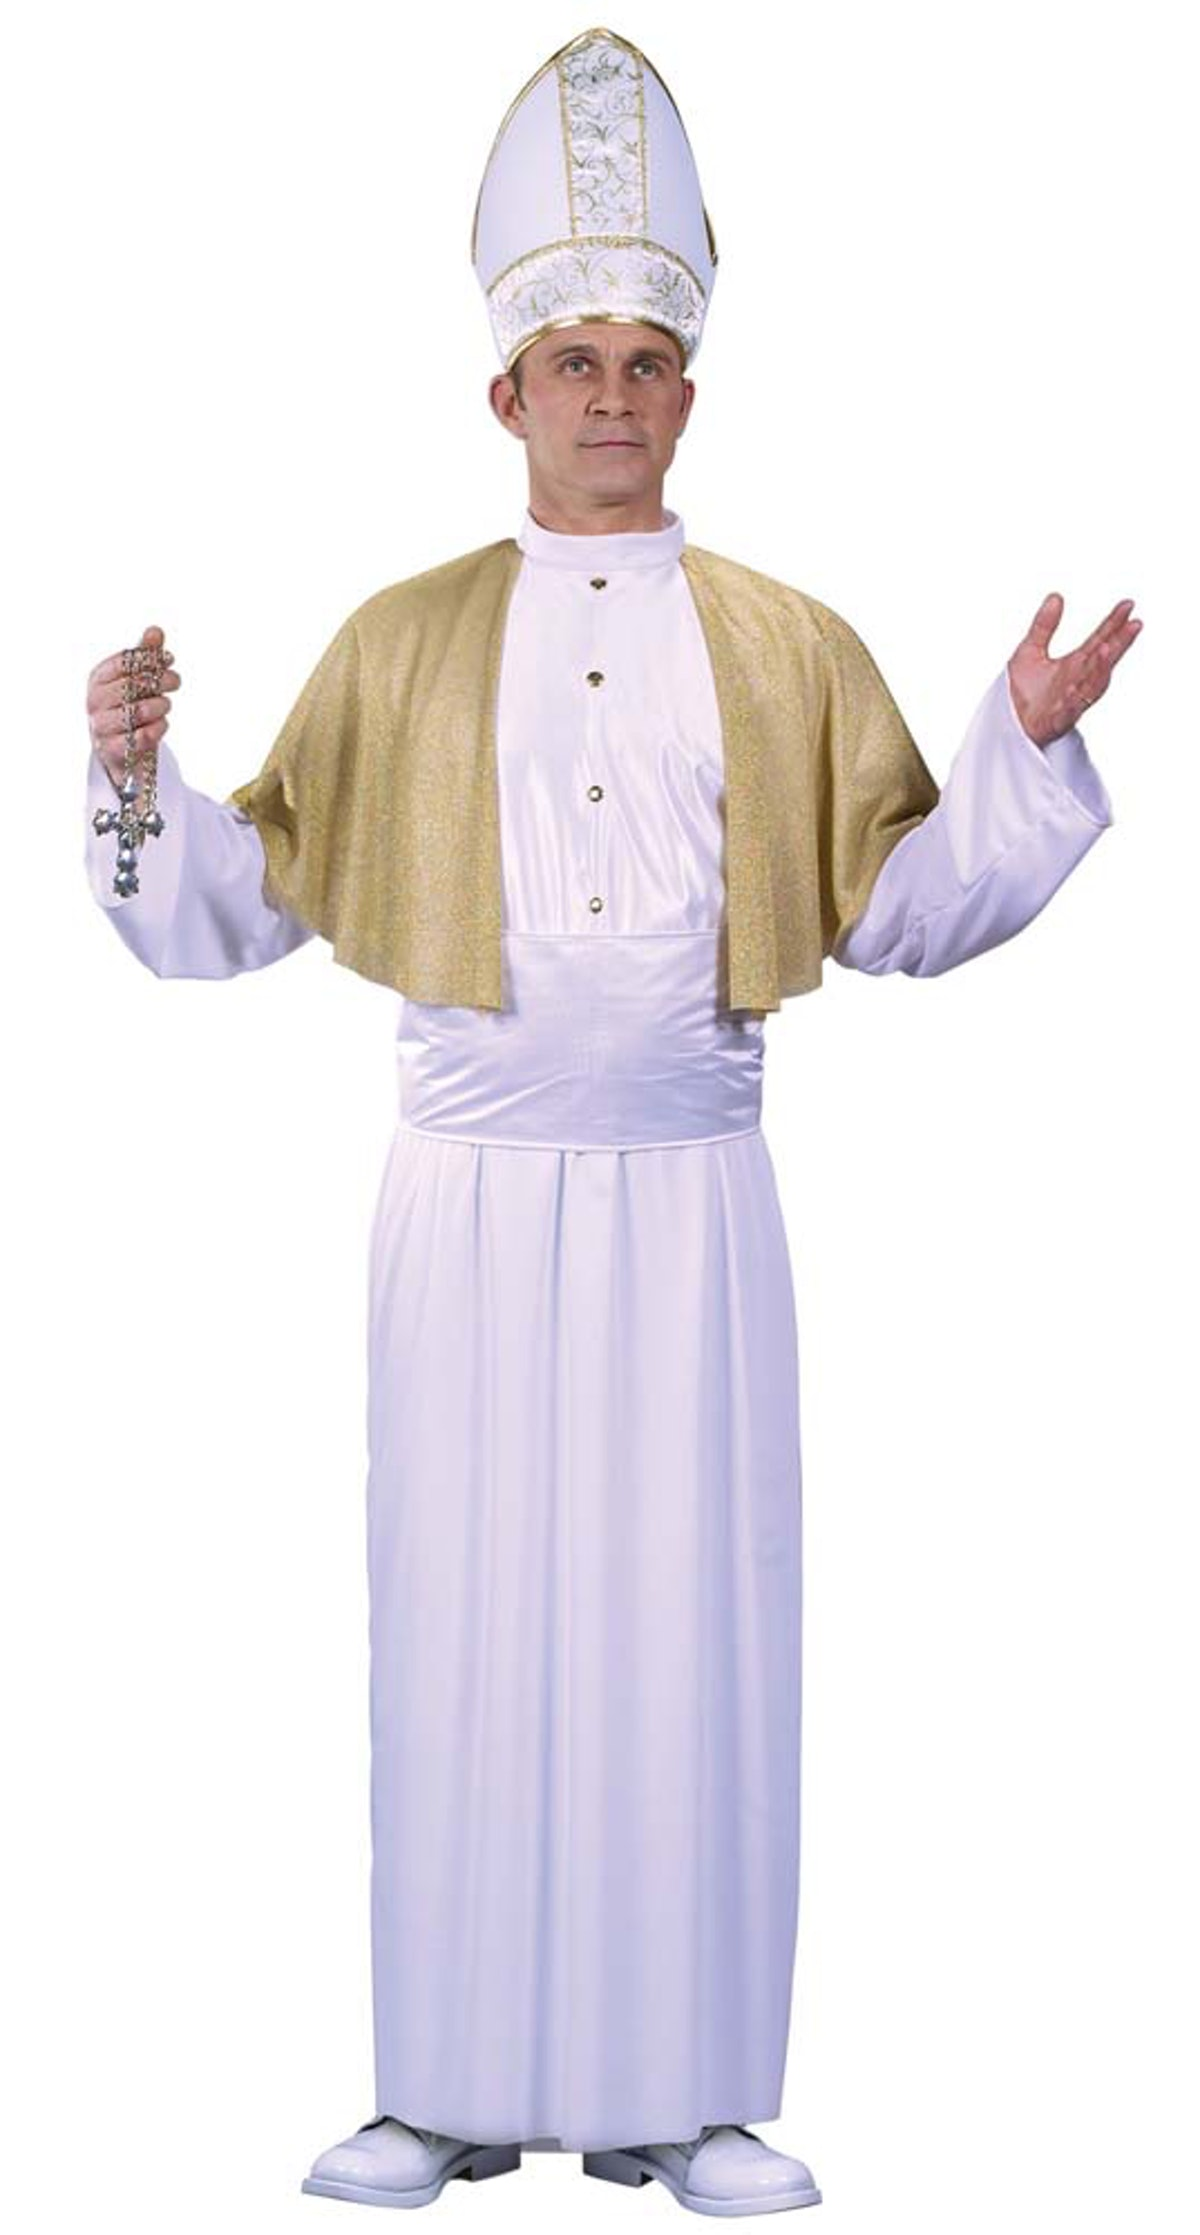 Moira Rose's wedding look on 'Schitt's Creek' is similar to a Pope costume.